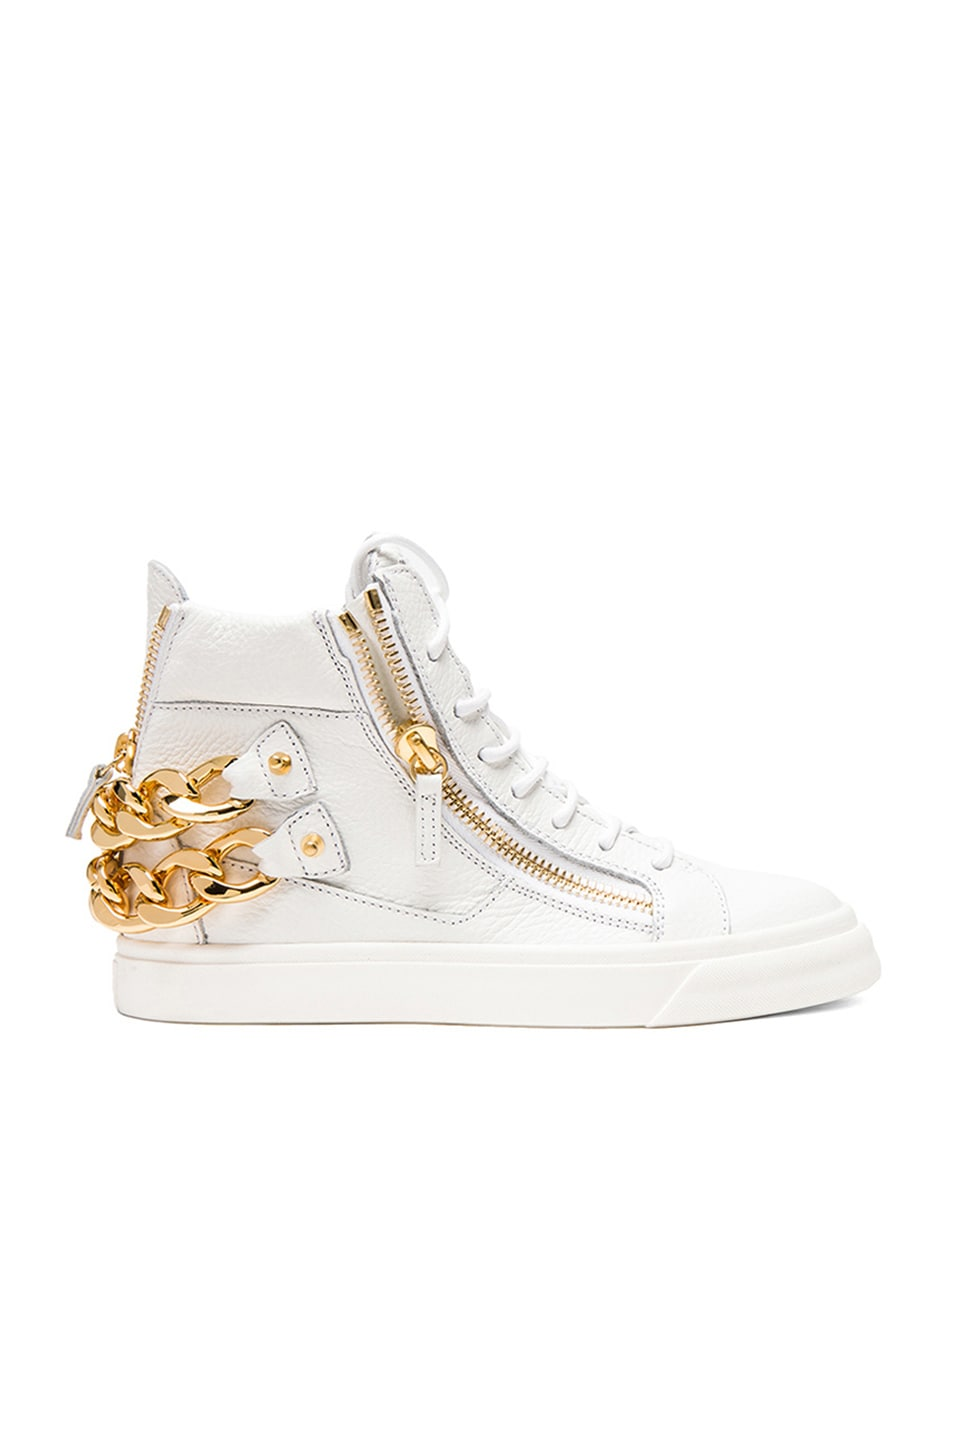 Image 1 of Giuseppe Zanotti Chained Leather Sneakers in White